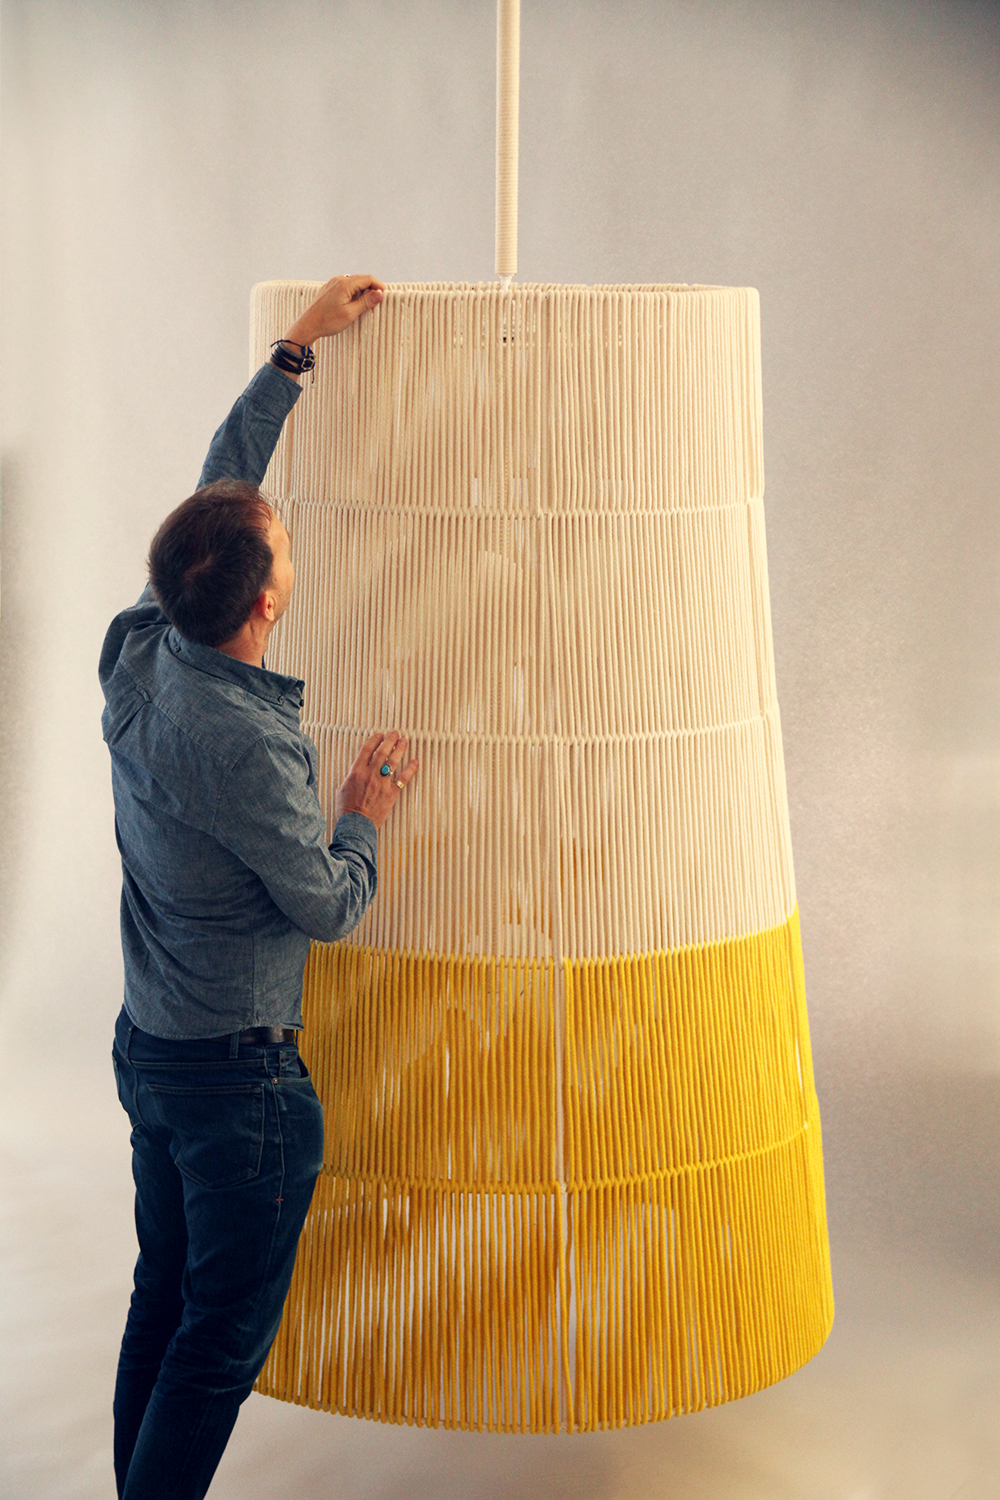 Rope_C-182_Horizon String Tapered Pendant_Large_Yellow_with Chad.jpg